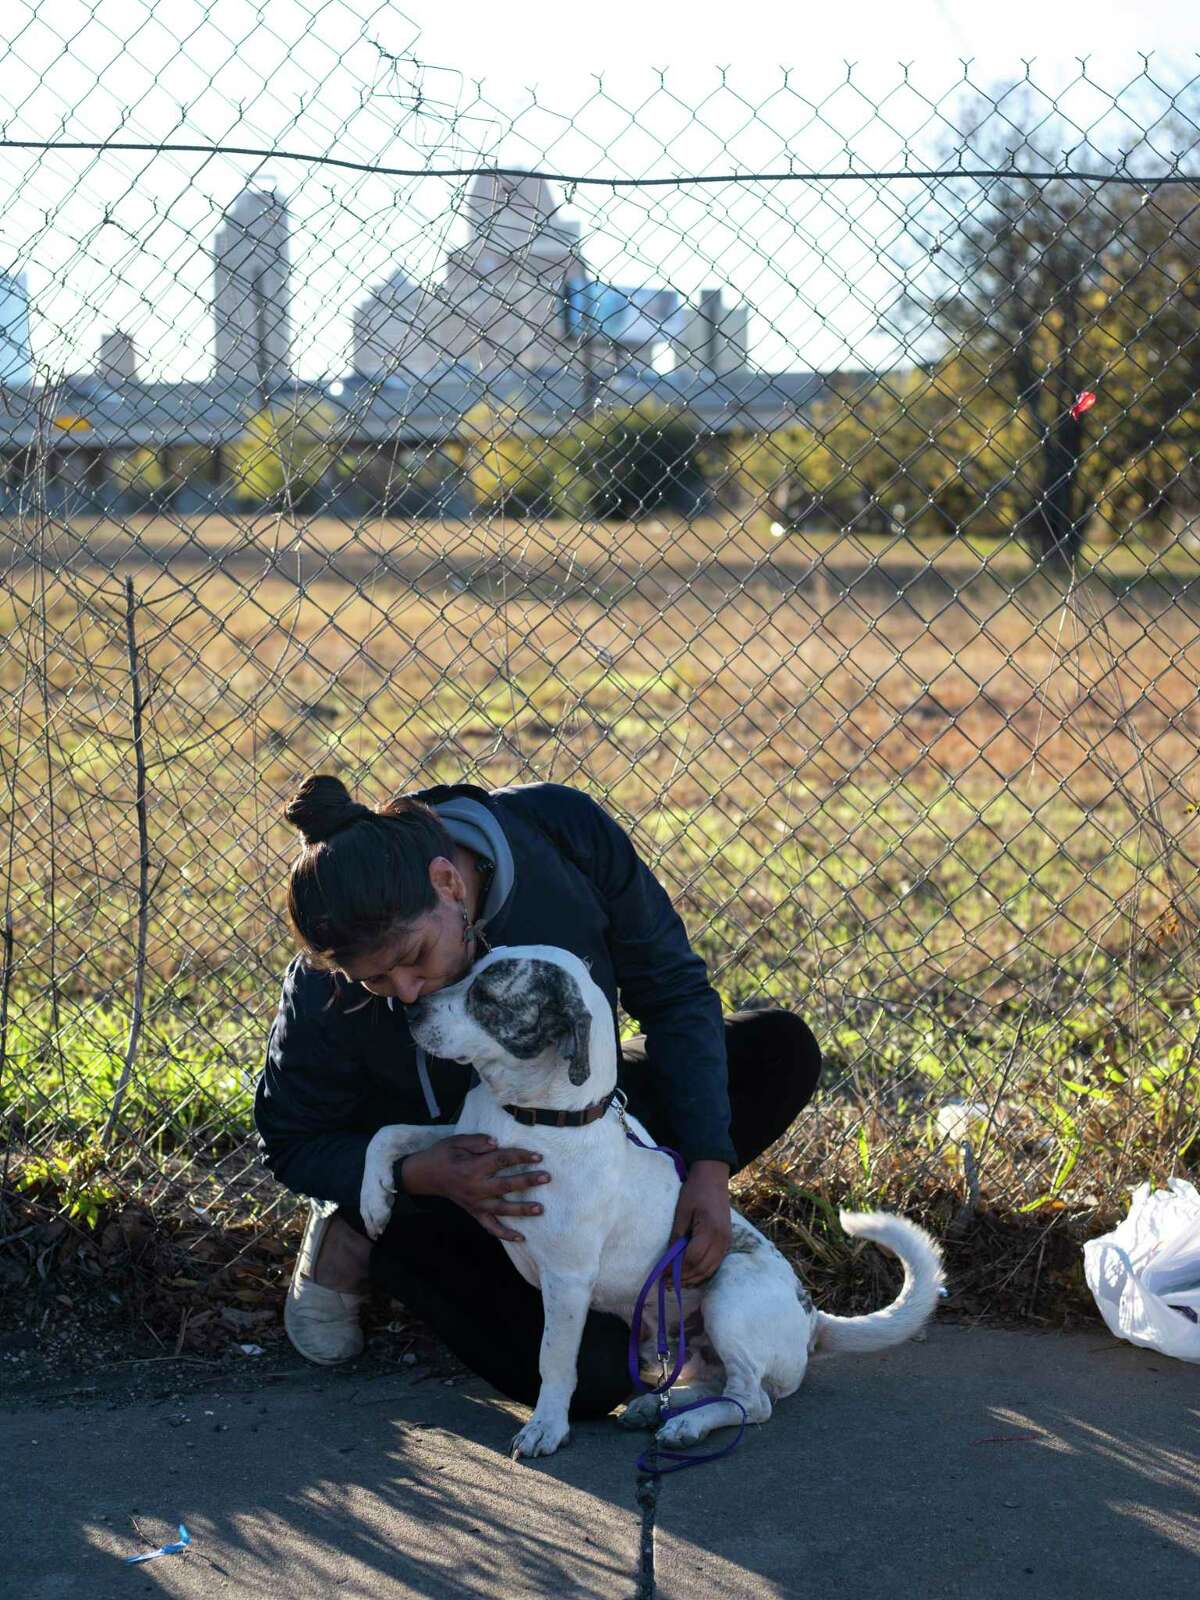 """Rubyann Maldonado talks to her dog, Lockwood, after receiving free veterinary services provided by the nonprofit Hope 4 Hounds at Communities Under the Bridge on Sunday, December 13, 2020. Maldonado says that she found Lockwood two years ago at Lockwood park in San Antonio. Maldonado says that it's tough to feed Lockwood, keep him flea-free and to make sure he doesn't run off while they live together on the streets. """"He has bad separation anxiety,"""" she says, """"but that's my fault because I'm attached to him. He's my support animal. I can't do nothing without him."""" Maldonado appreciated the free services. """"This means the world. This means no one can take him from me,"""" she said, referring to the microchip that Hope 4 Hounds placed in Lockwood, keeping on record that Maldonado is his owner."""